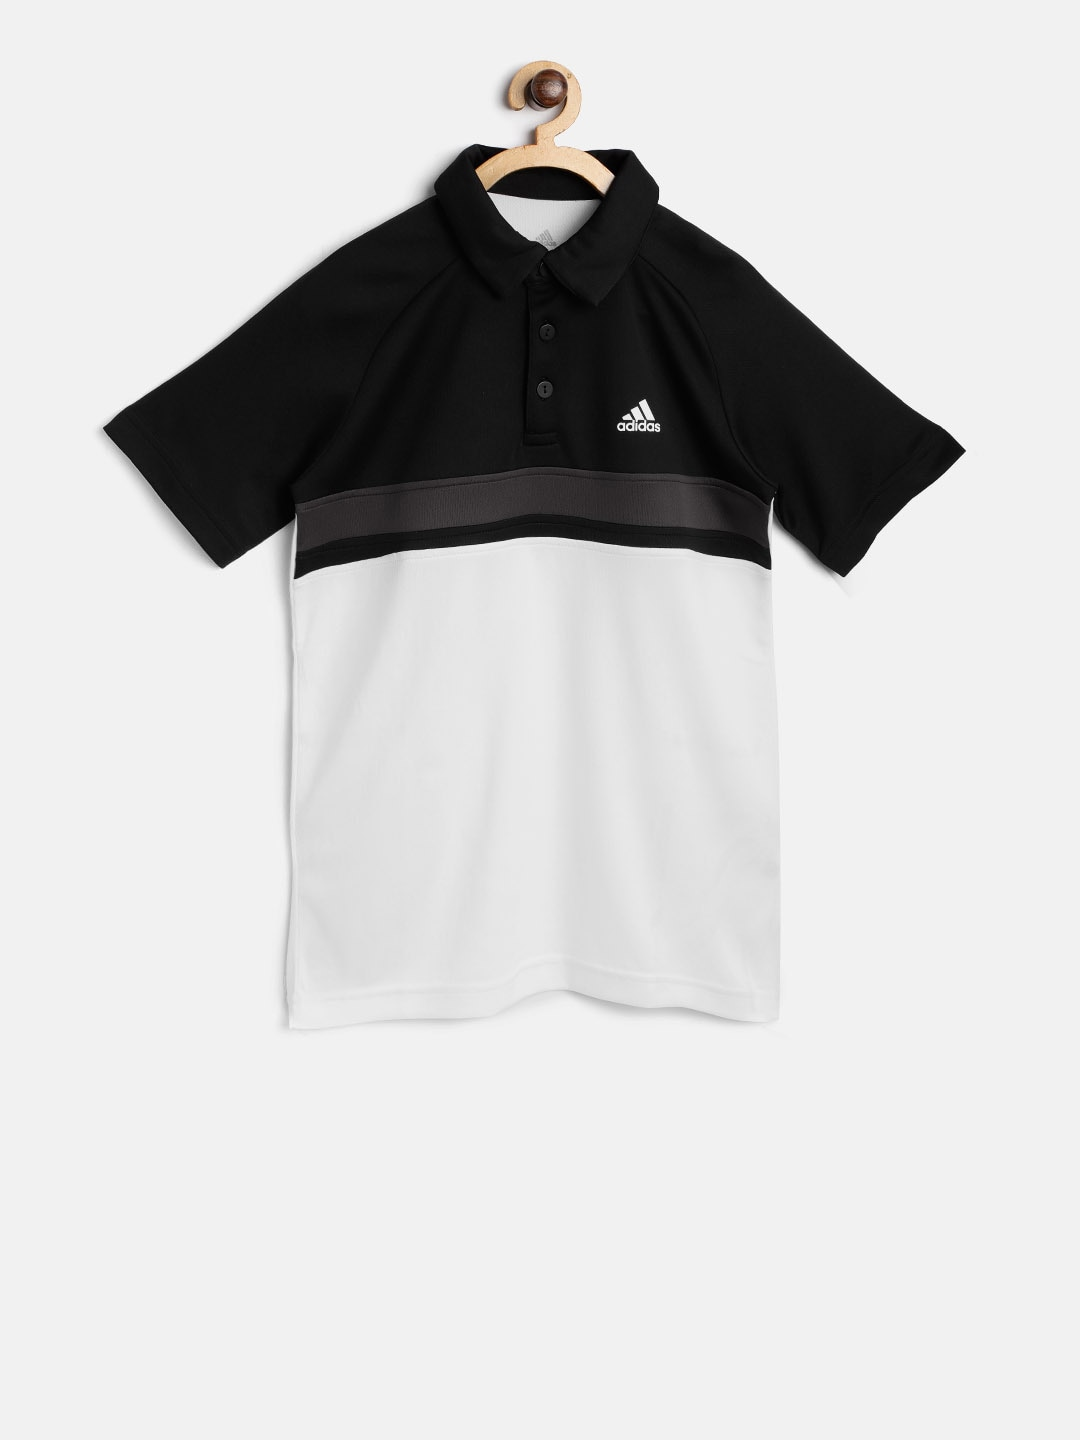 adidas casual t shirts Sale. Up to 41% Off. Free Shipping